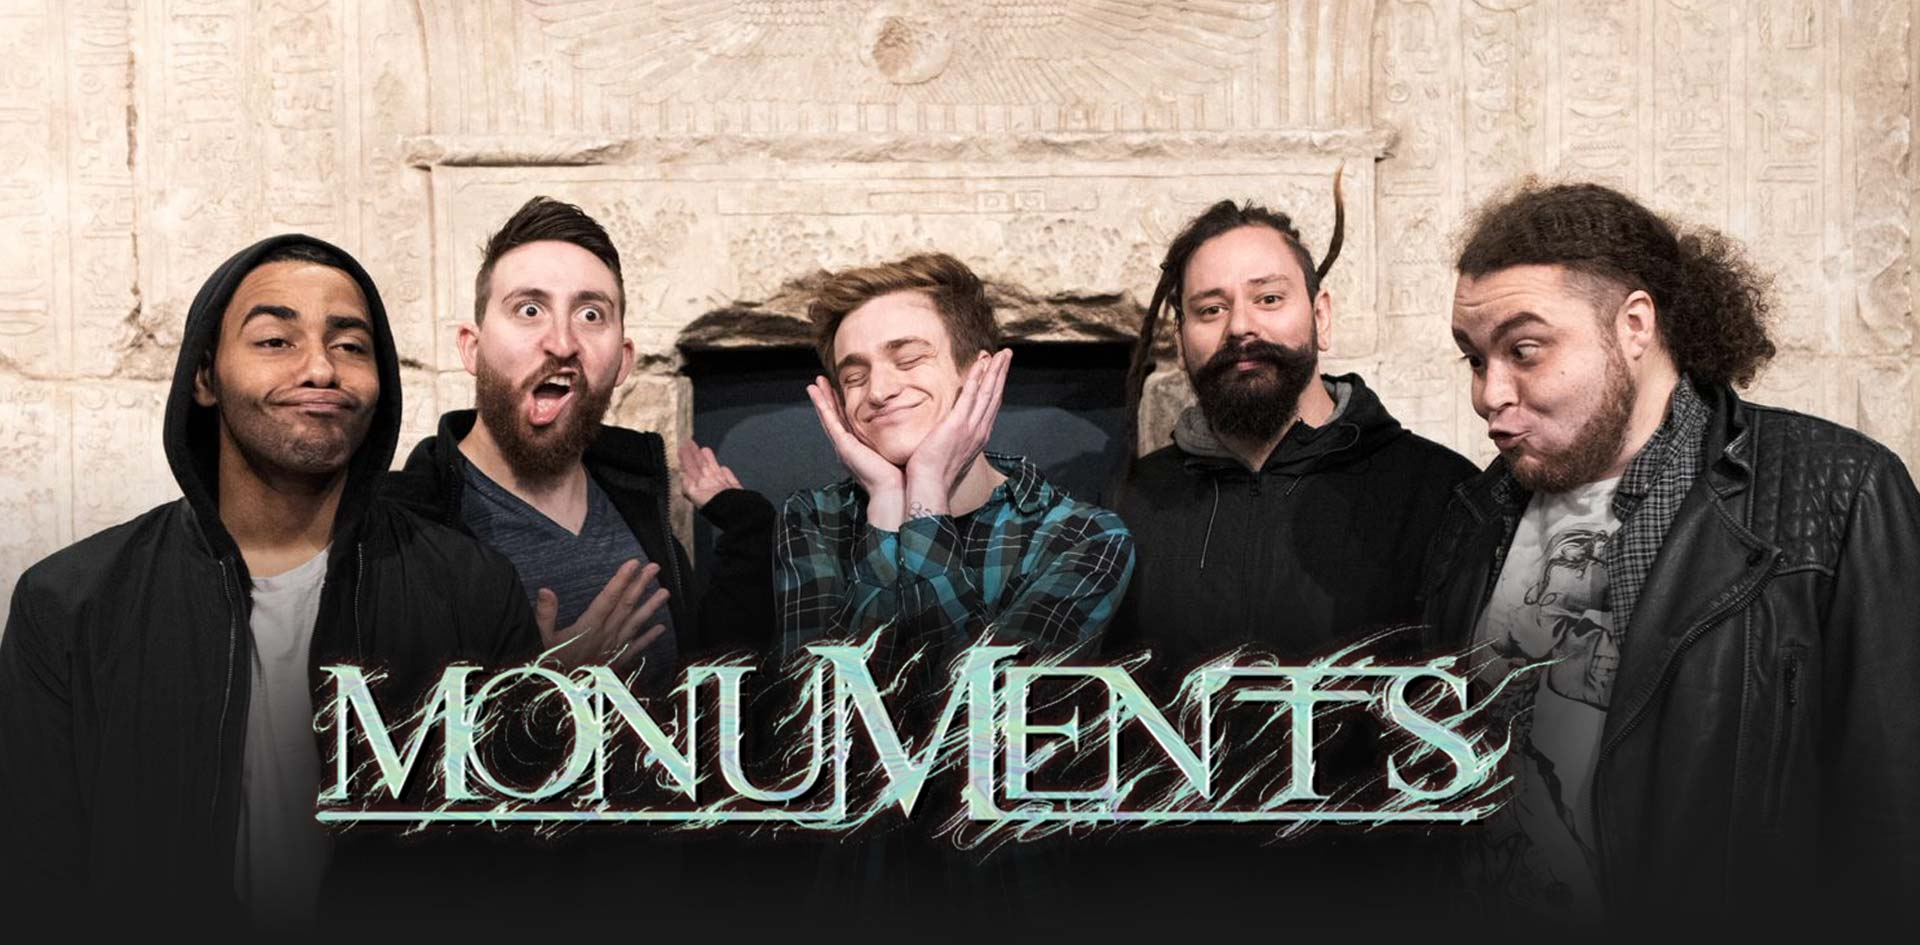 Monuments Band Uk Official Store and Website